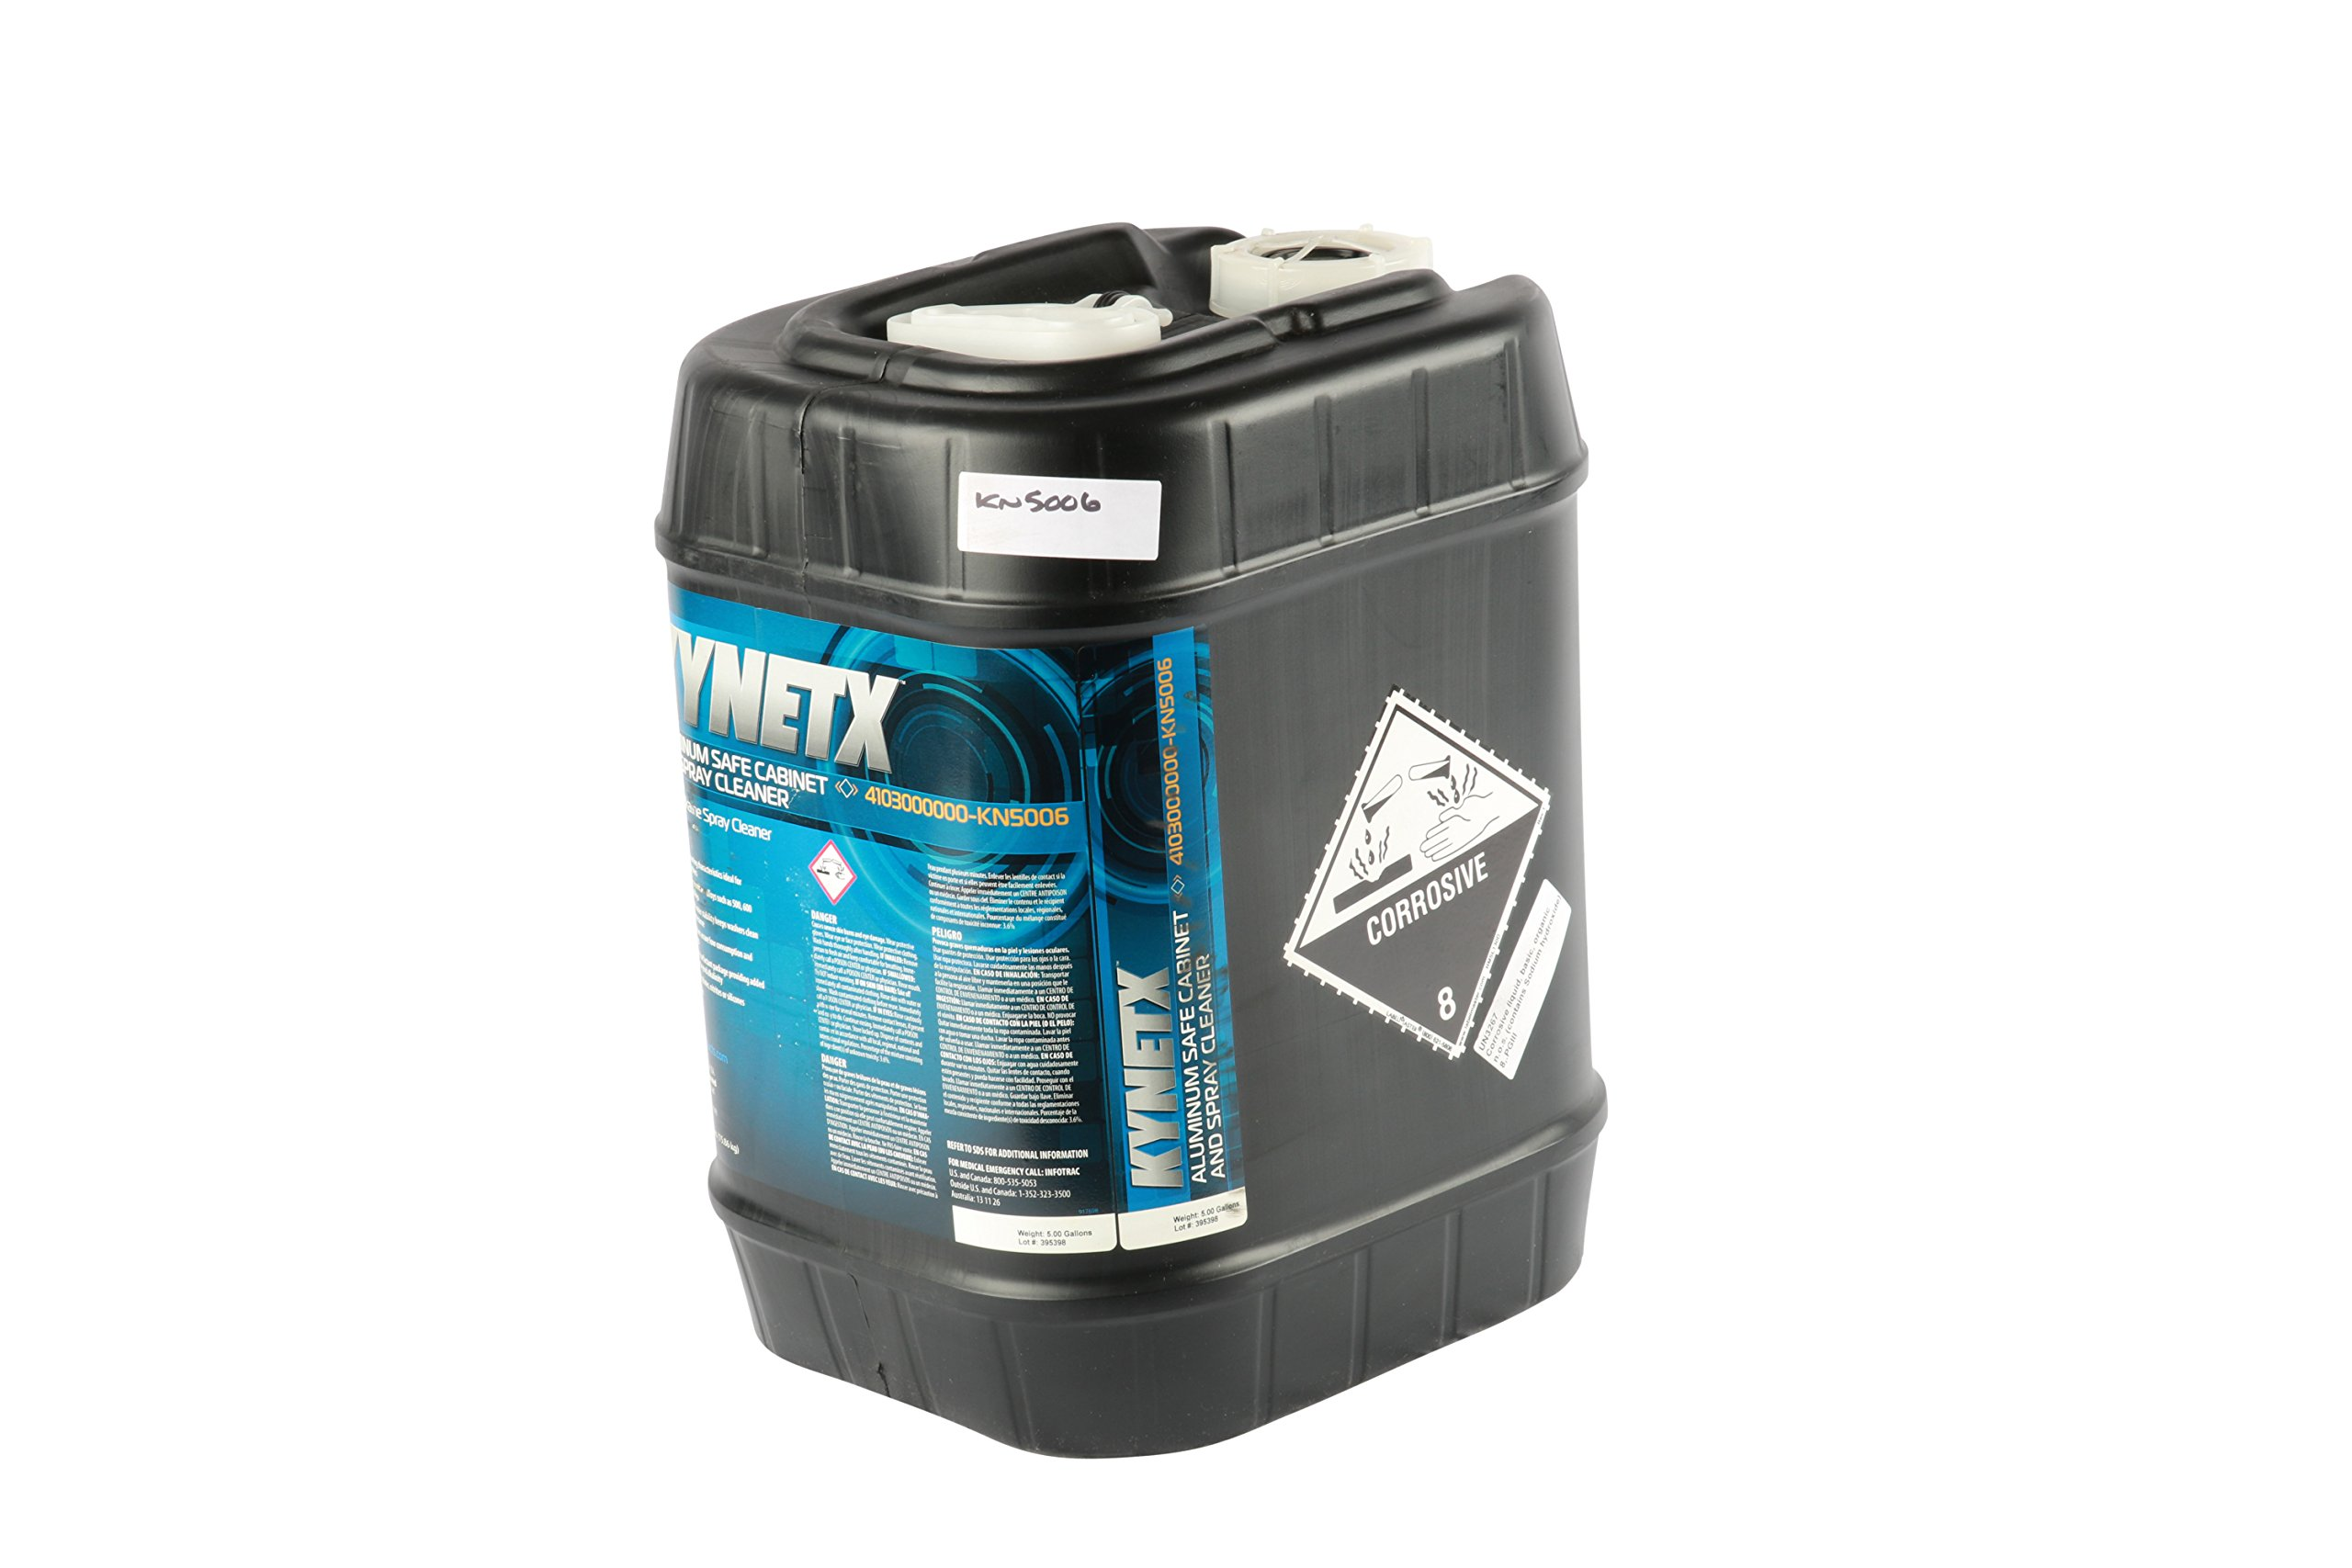 Kynetx Alum Safe Cabinet & Spray - 5-Gal Pail, 4103000000-KN5006, Spray Cleaner, Aluminum, Cast Iron, Carbon Steel, Tool Steel, Stainless Steel Cleaner, Low Foaming, Heavy Duty Cleaners